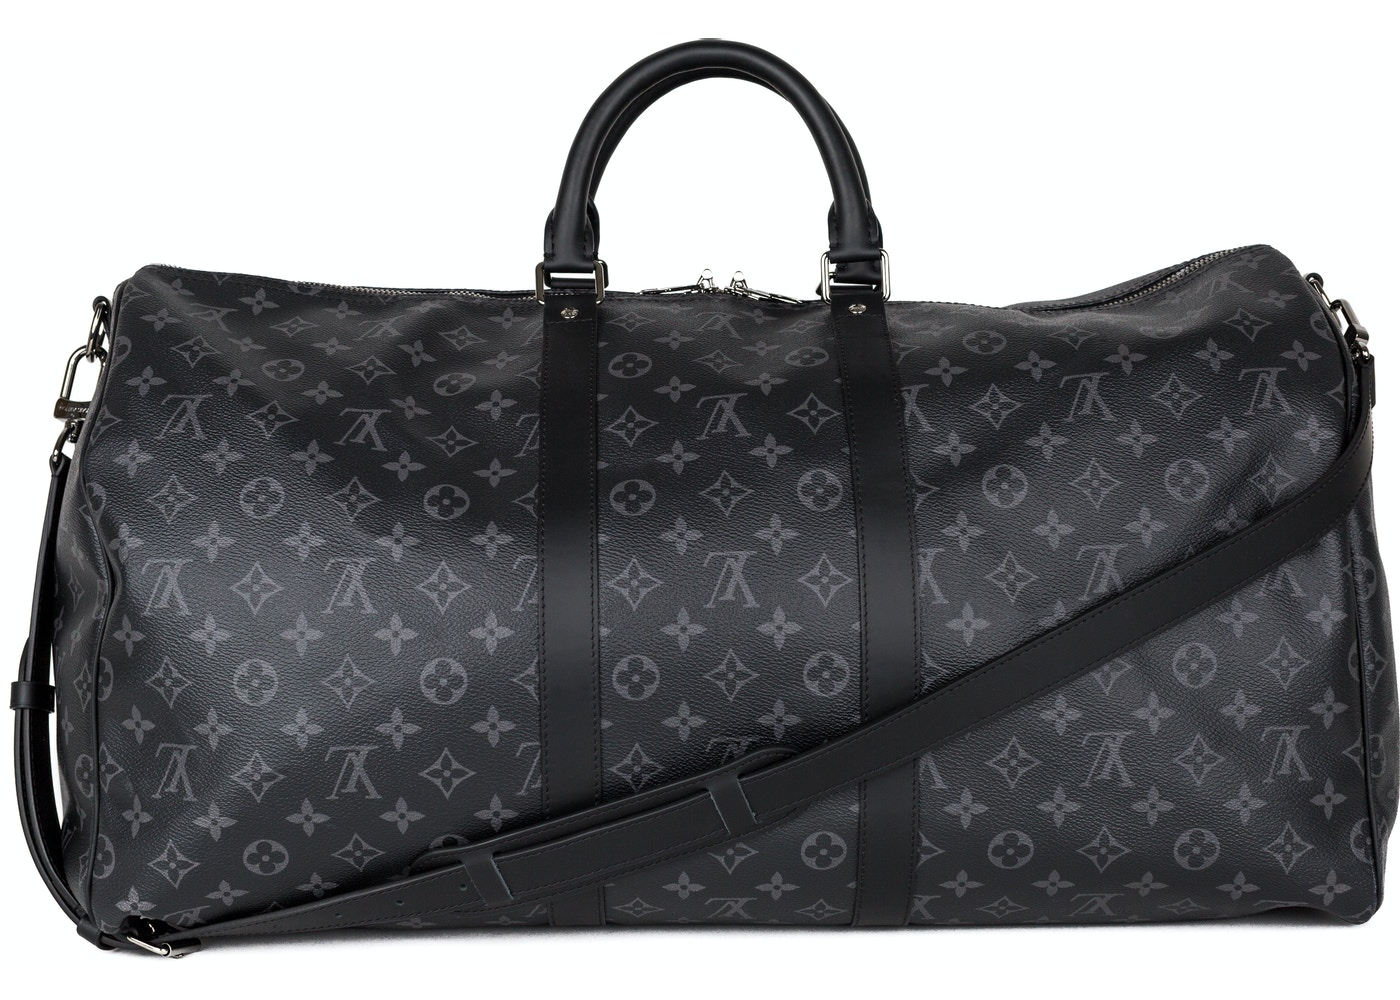 5dafefedd8a4 Louis Vuitton Keepall Bandouliere (Without Accessories) Monogram Eclipse 55  Gray. Monogram Eclipse 55 Gray